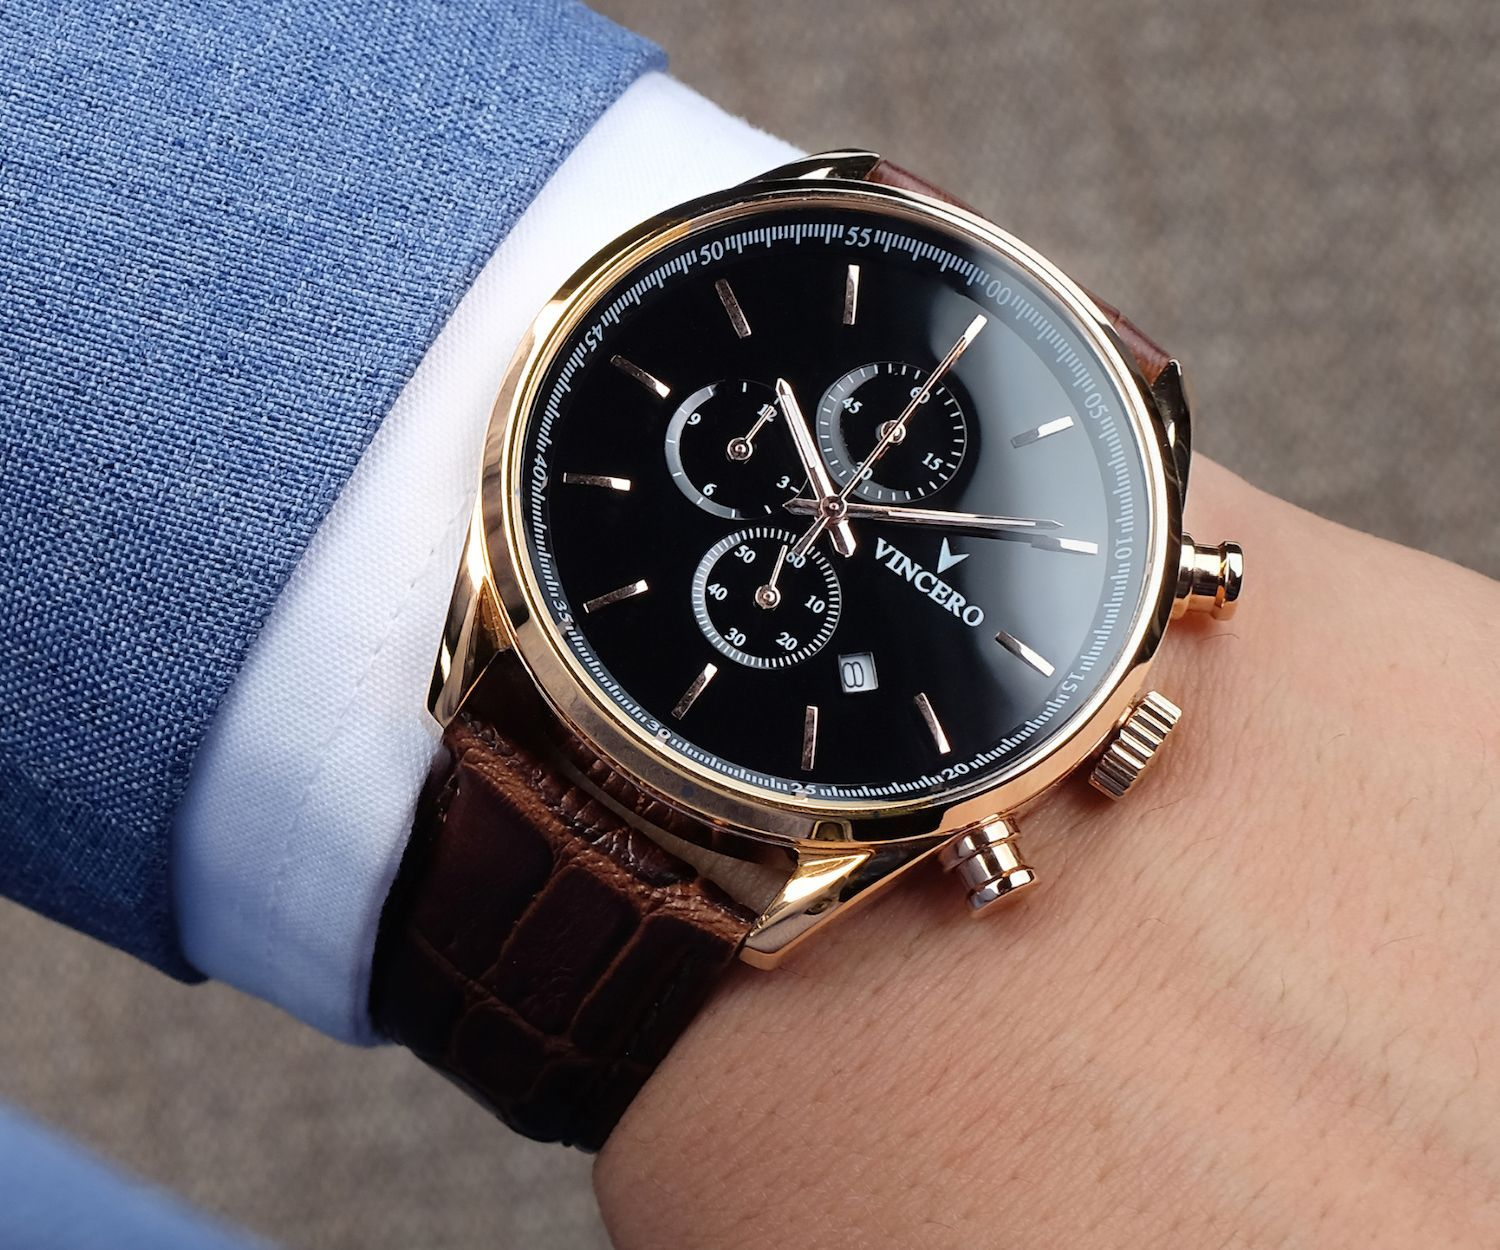 Mens Chrono S Gold Watch Vincero Collective Luxury Watches For Men Expensive Watches Watches For Men